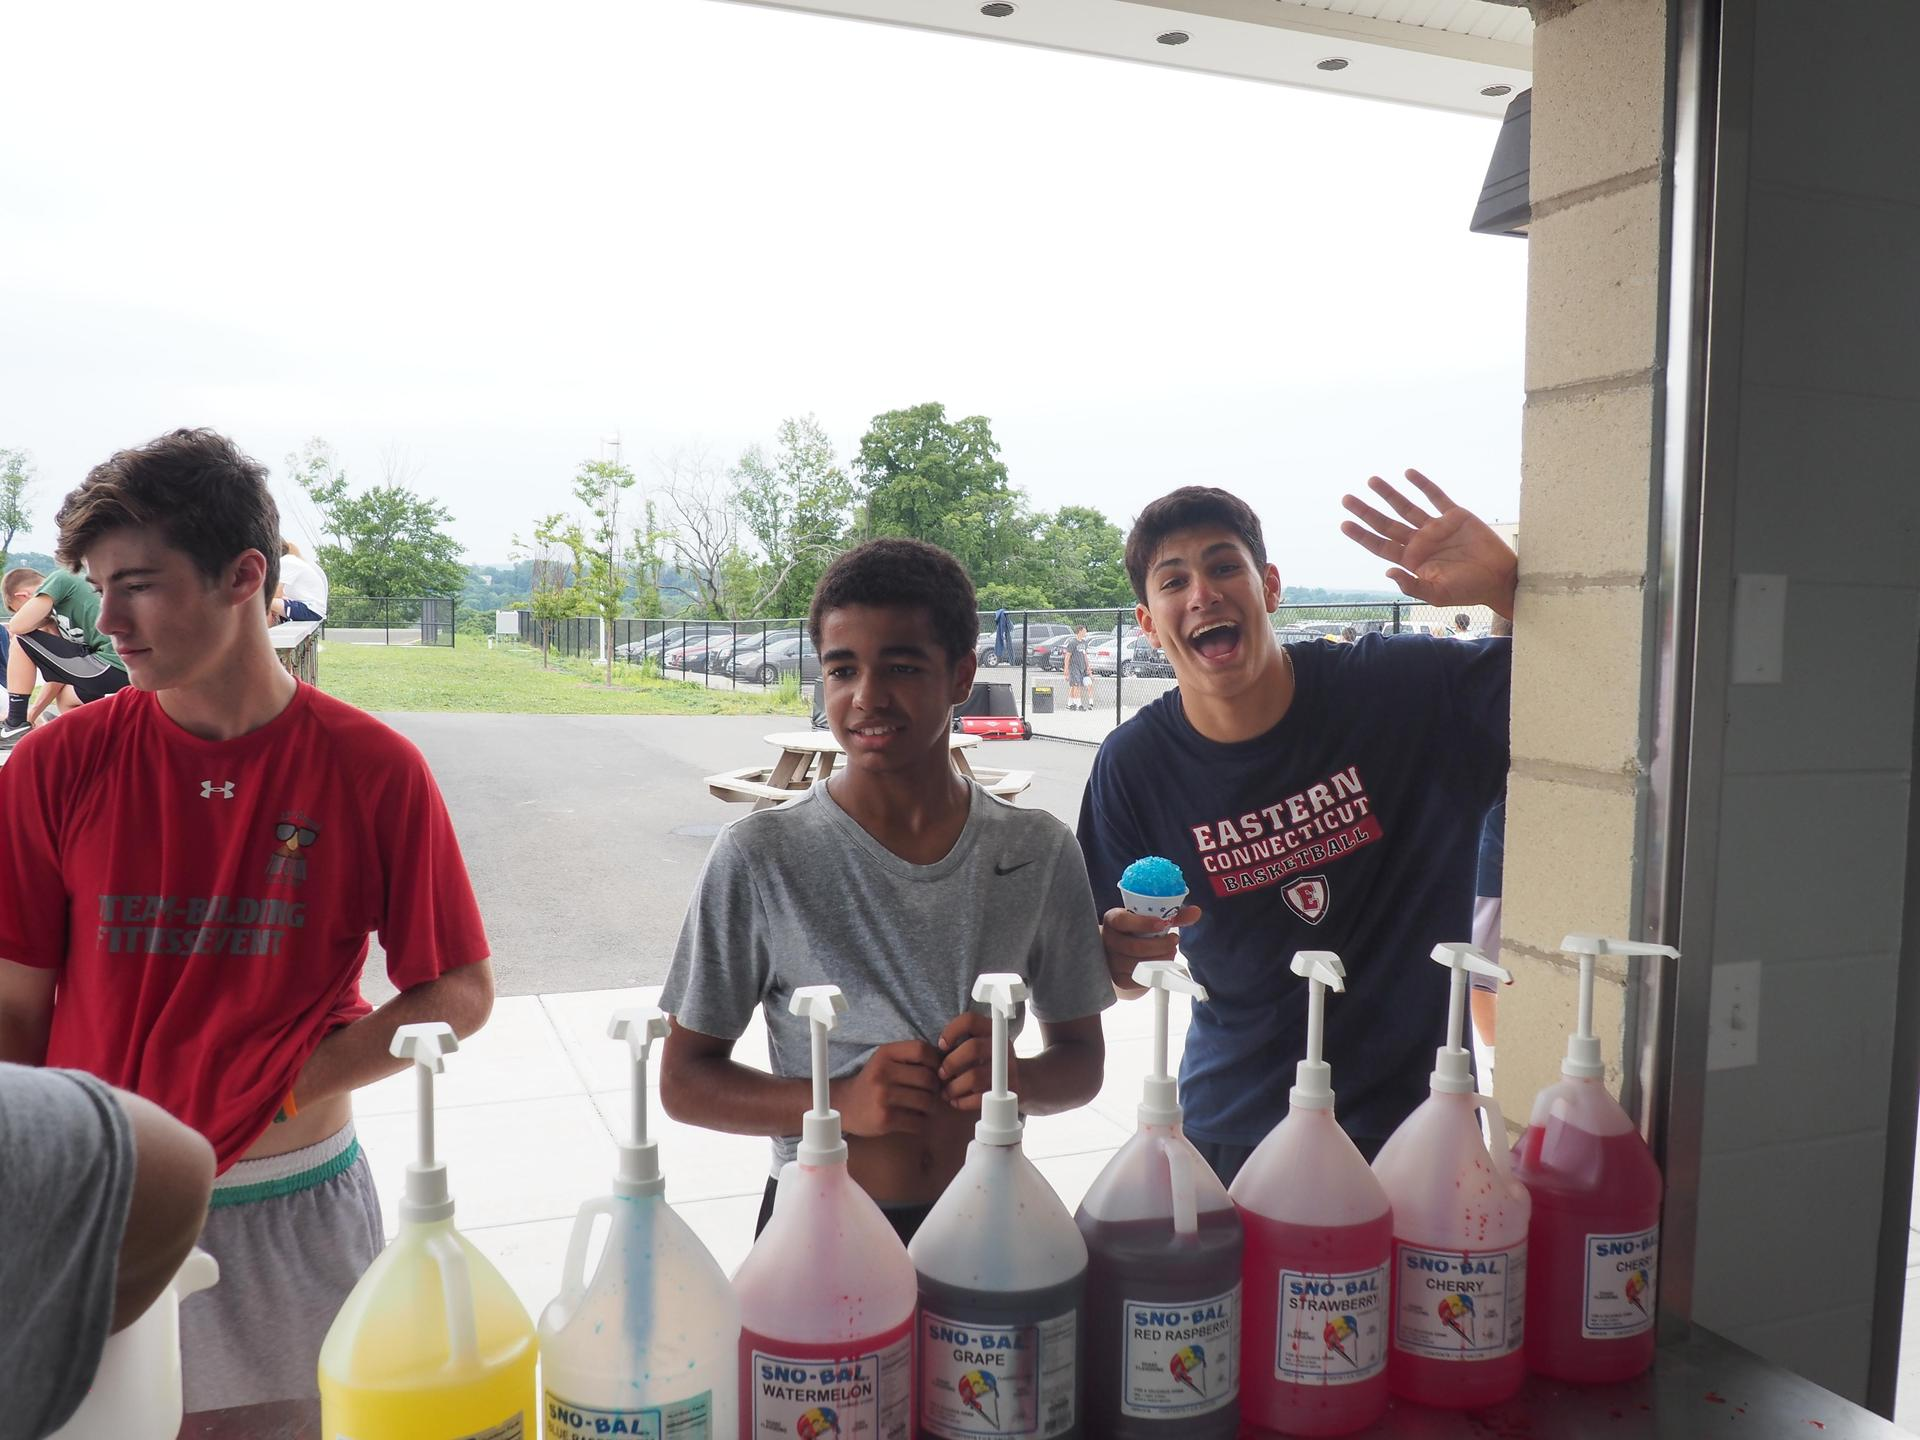 Snow cones at Falcon Blast